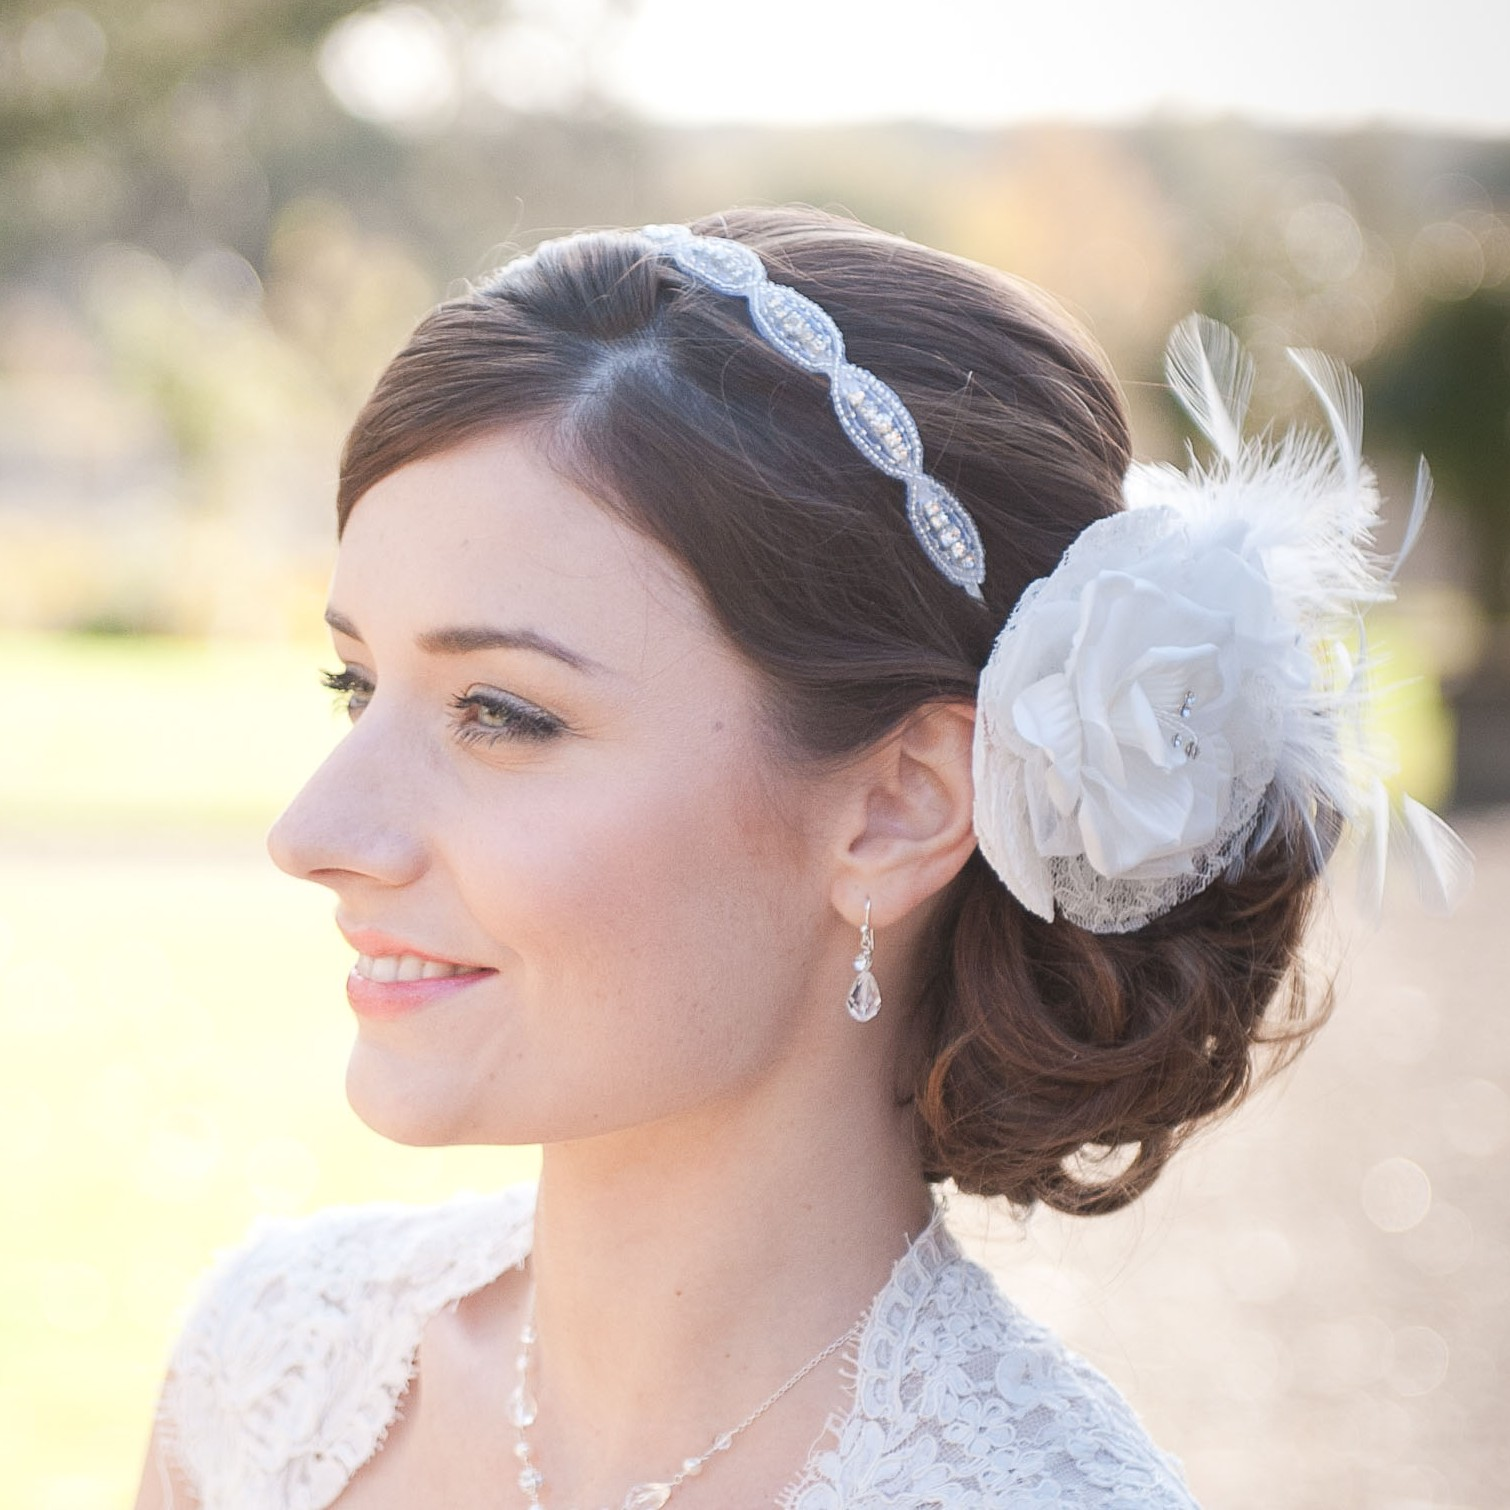 Chez Bec Sienna I Headband £72 and Katie Hair Flower £68 (4)